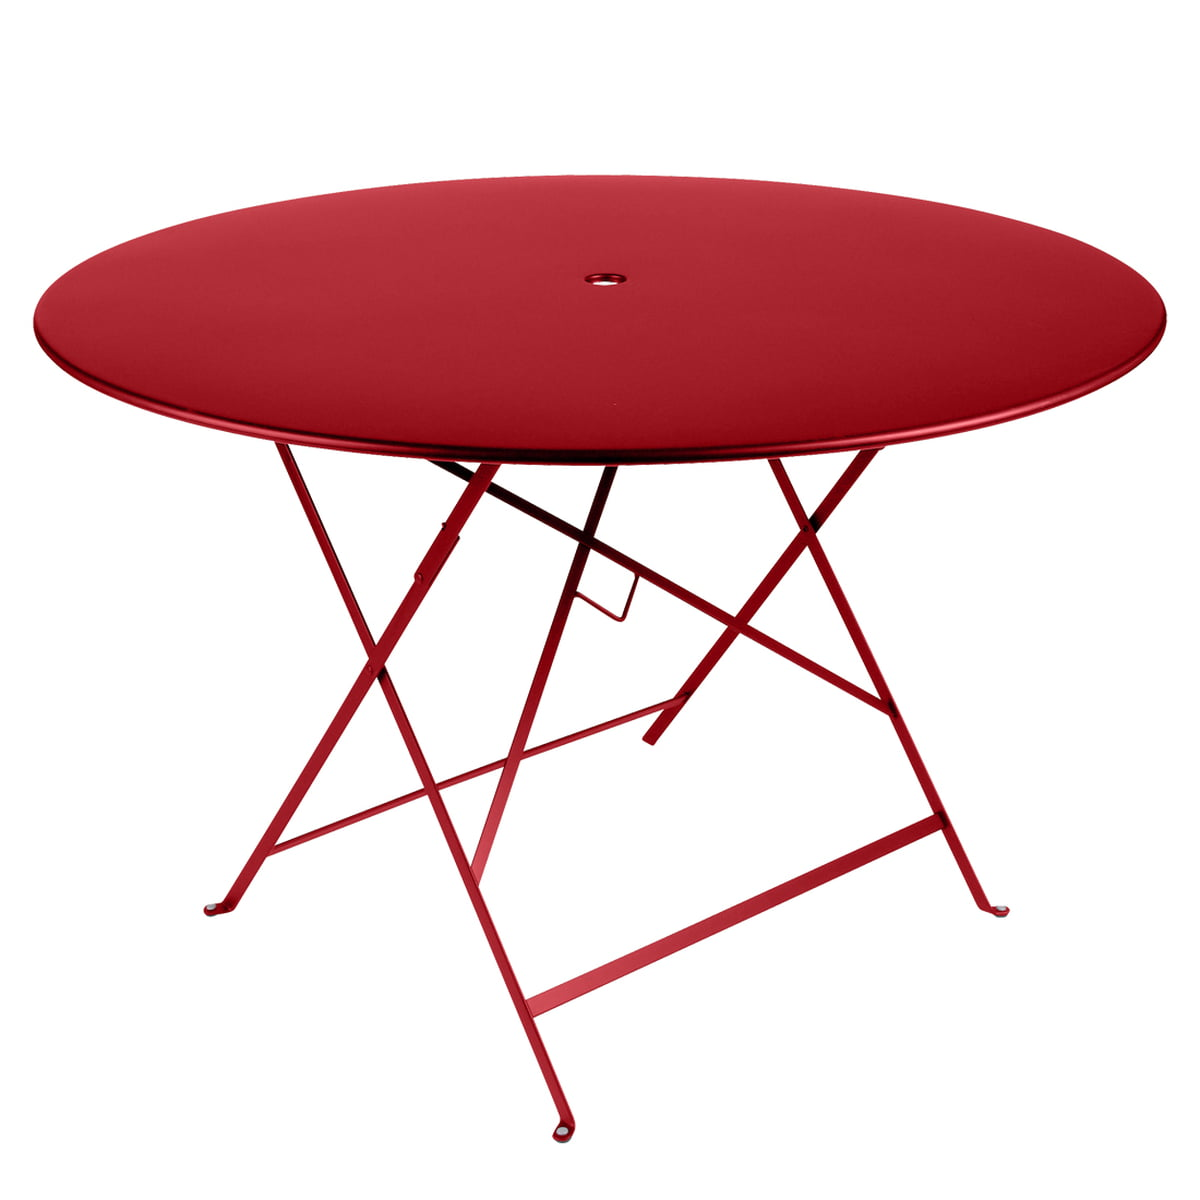 Bistro Folding Table Ø 117 Cm By Fermob In Poppy Red